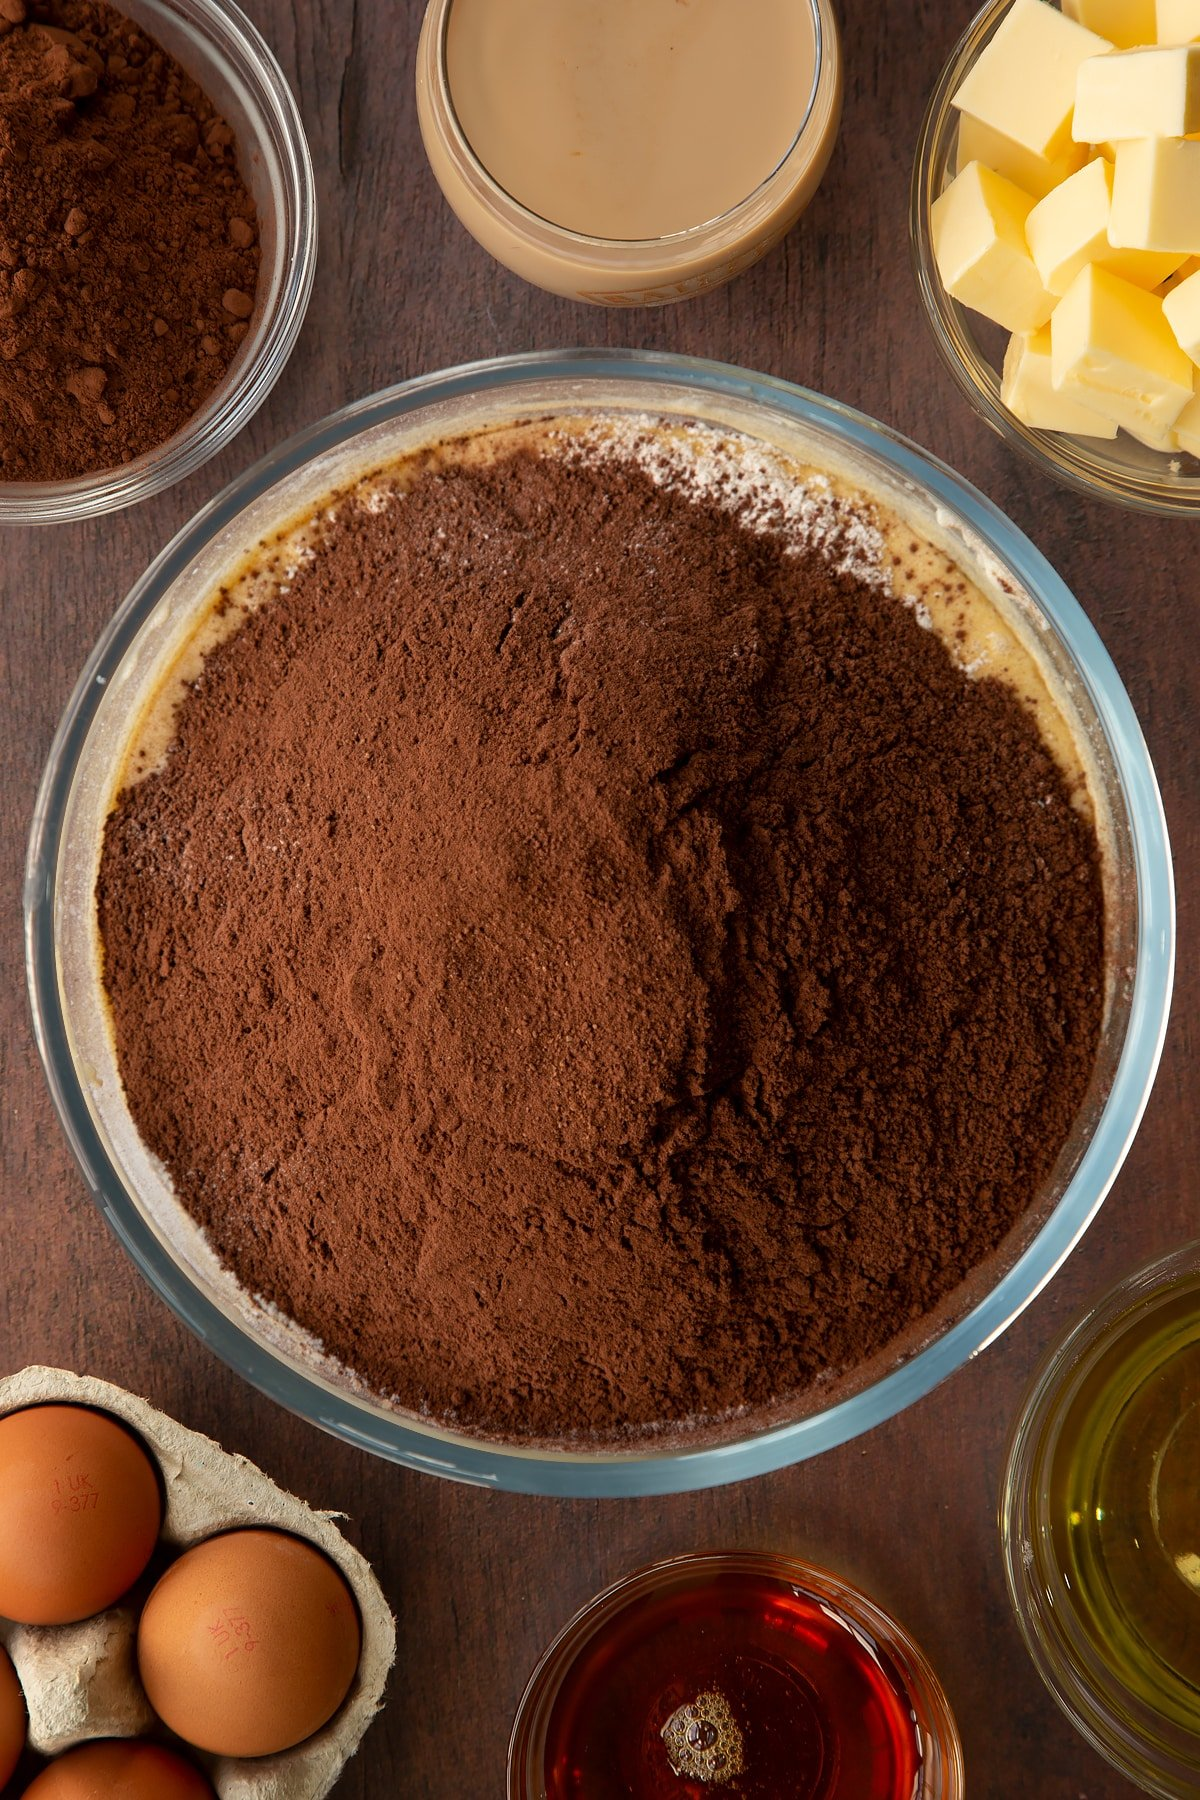 Butter, vegetable oil, caster sugar, golden syrup, egg and Baileys, whisked together in a glass mixing bowl with flour and cocoa on top. Ingredients to make a Baileys cake surround the bowl.